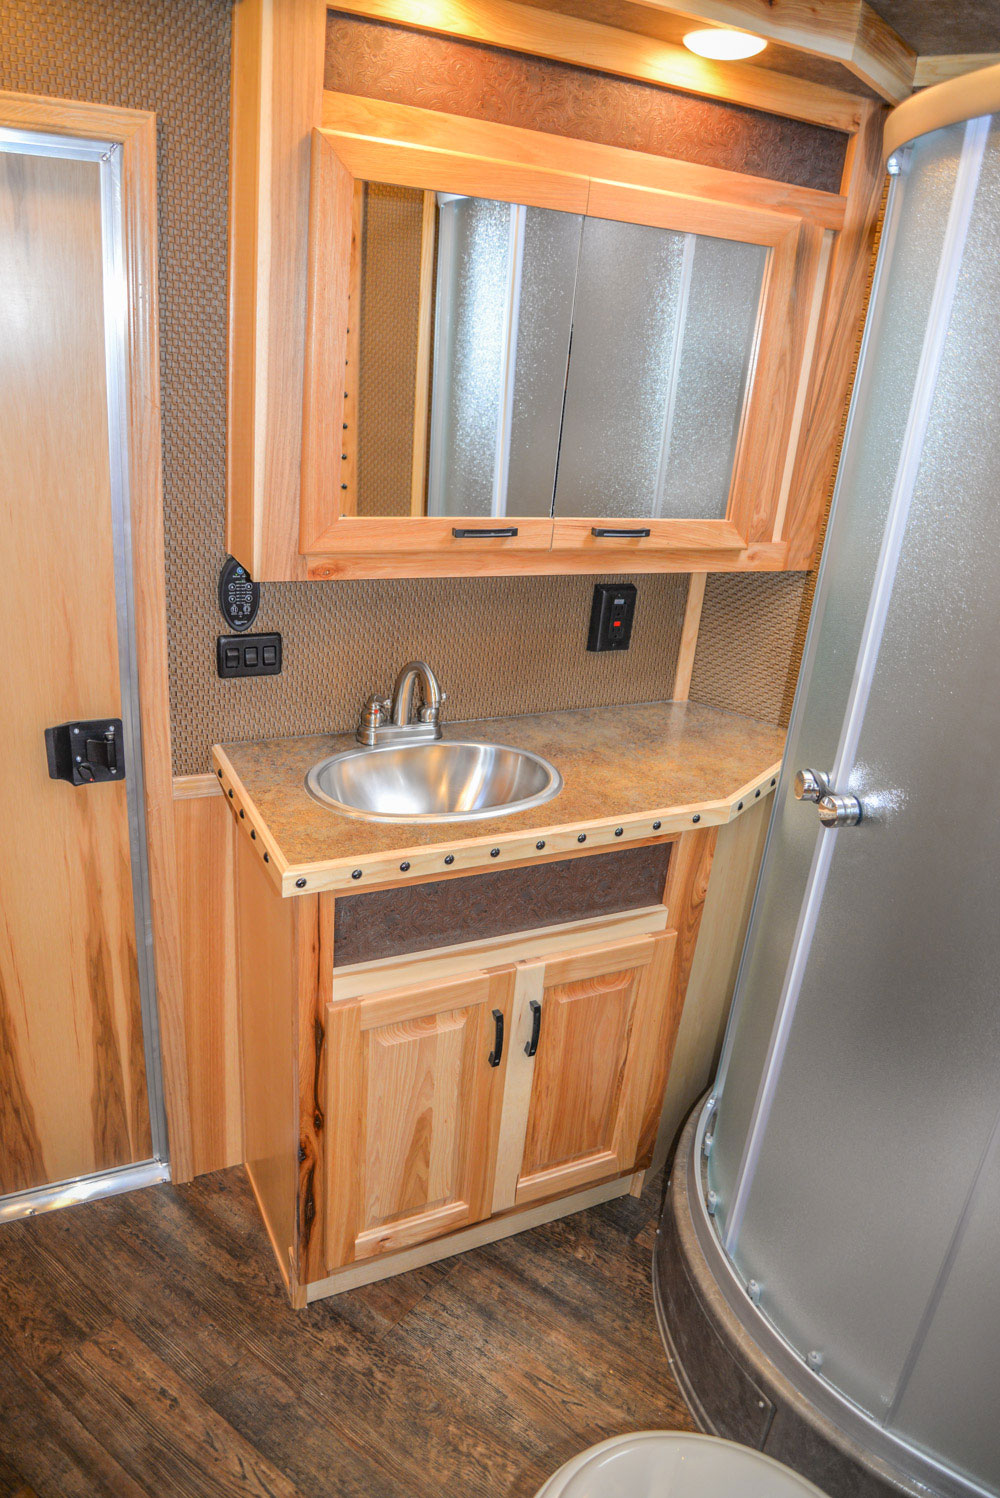 Bathroom Area in a BH8X16CL - Bighorn Edition Horse Trailer | Lakota Horse Trailers